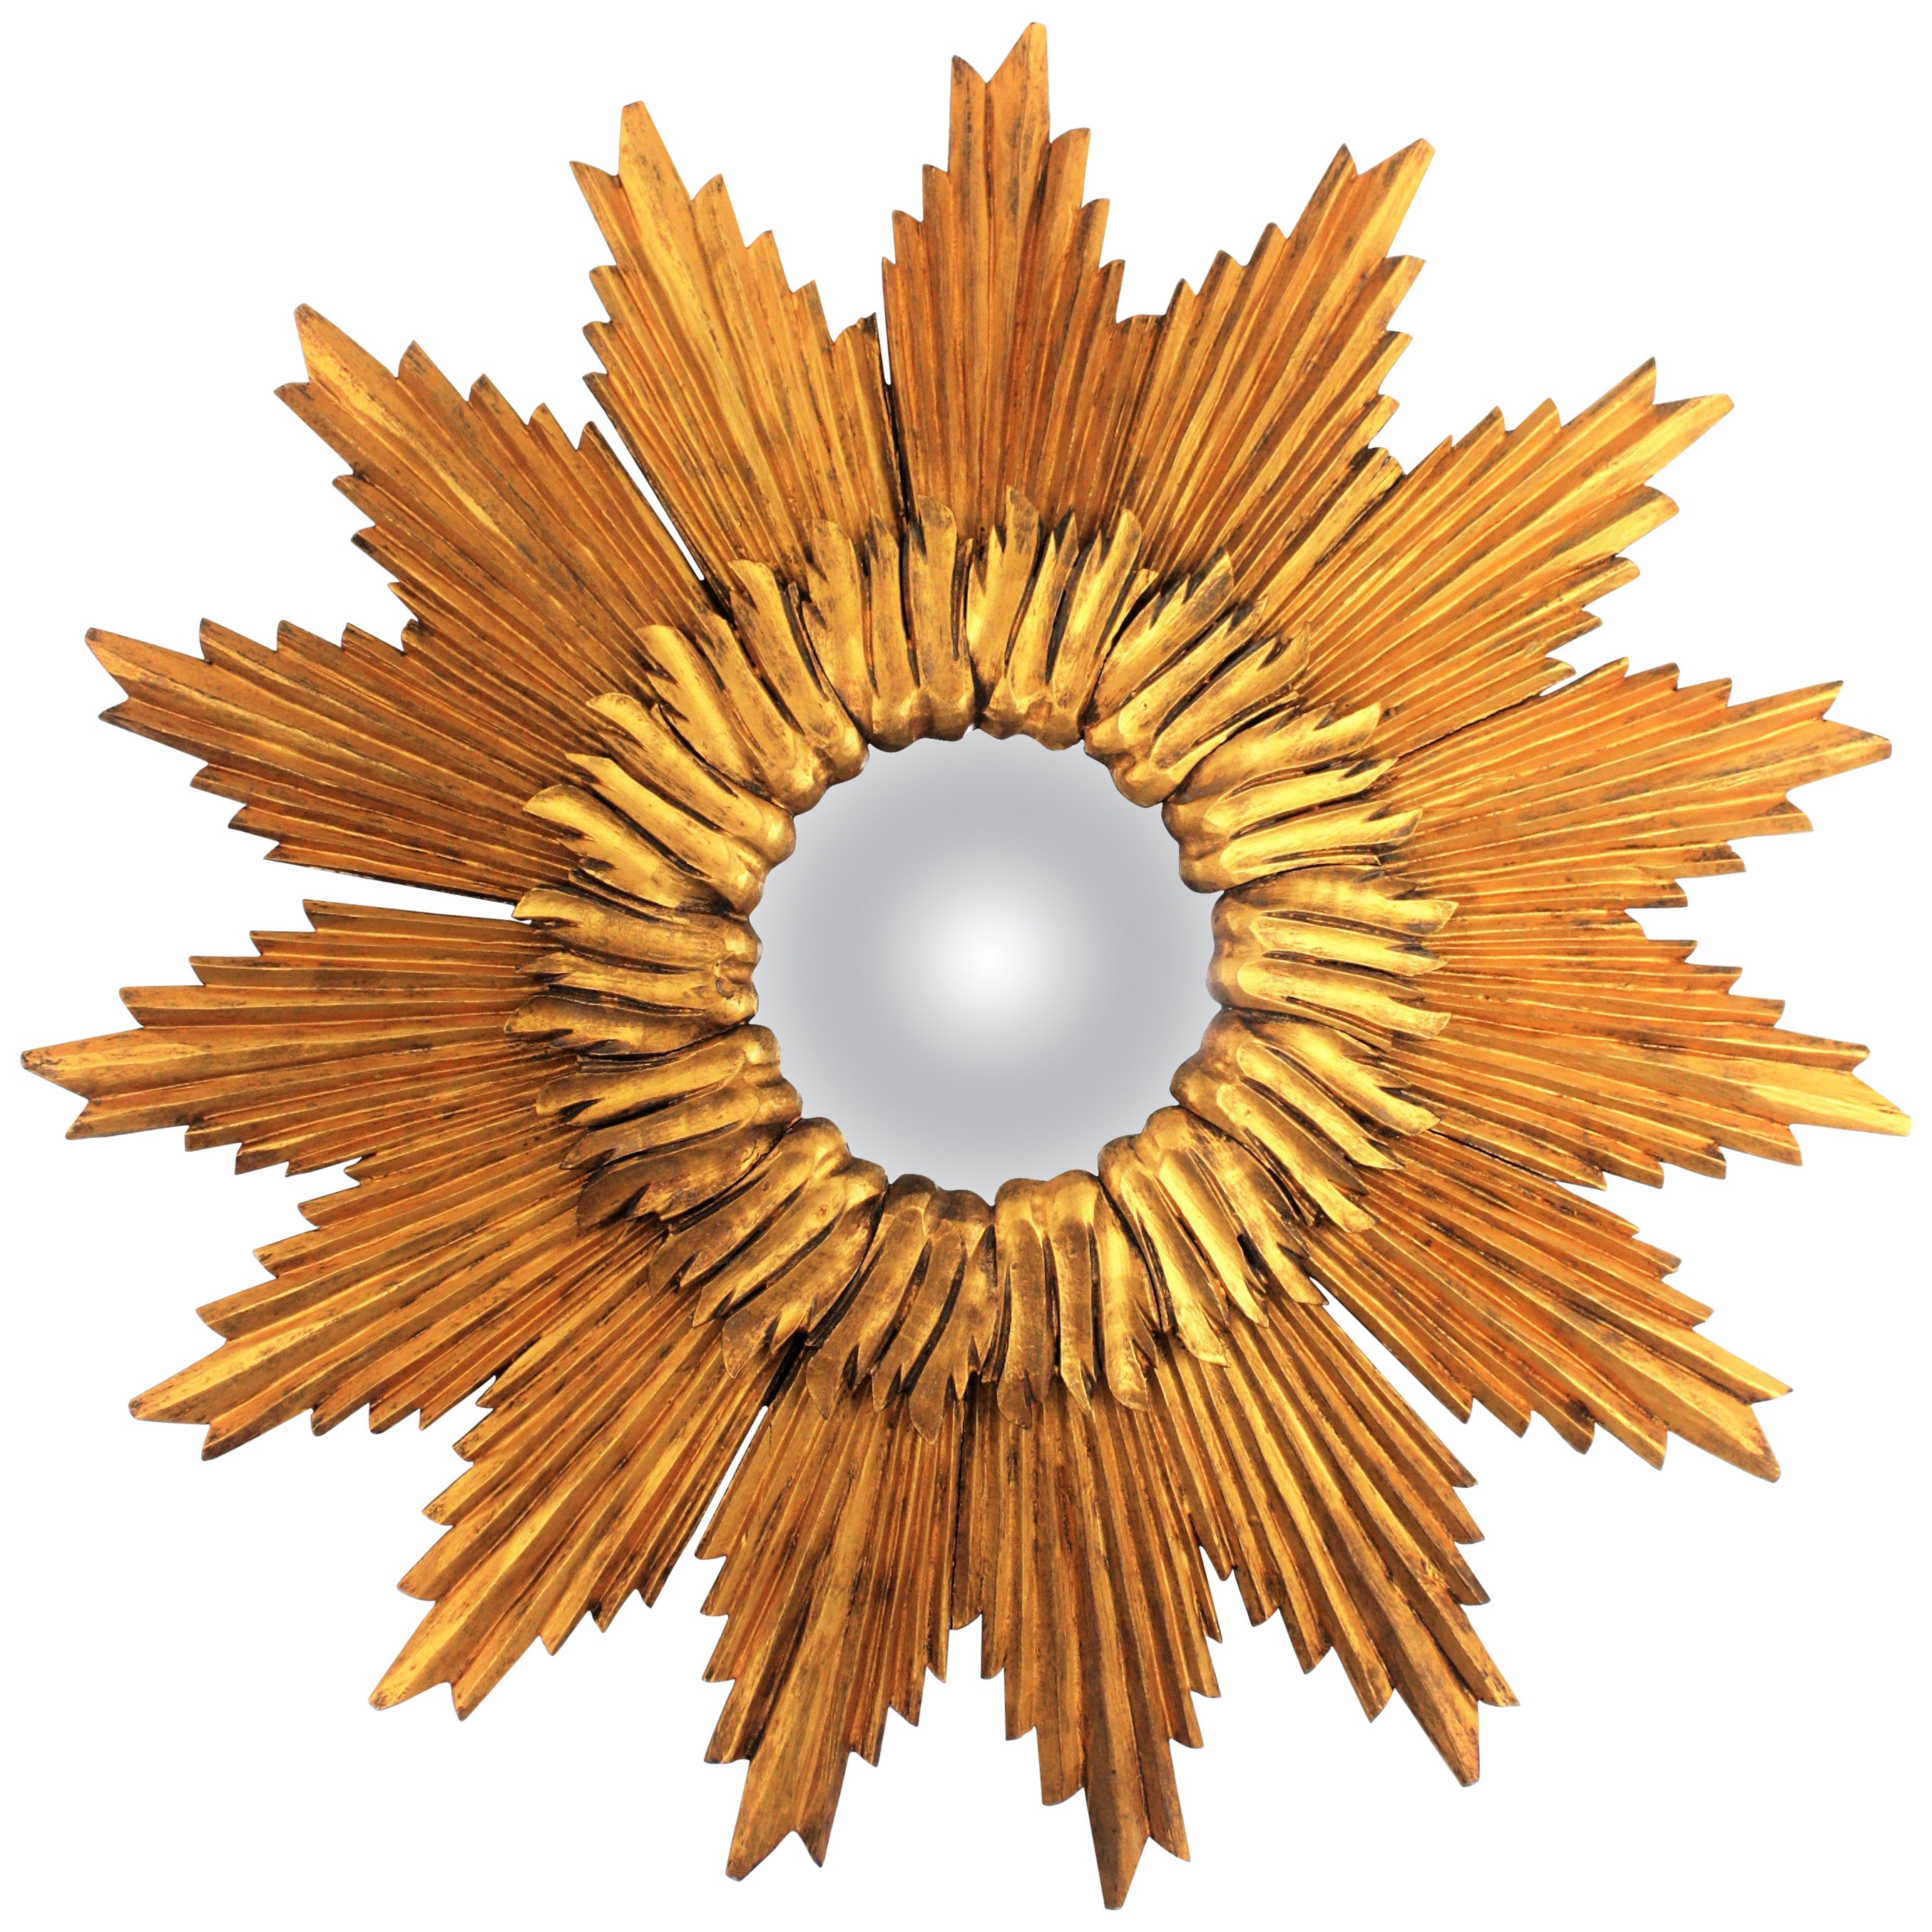 Double Layered Giltwood Sunburst Convex Mirror, France, 1960s